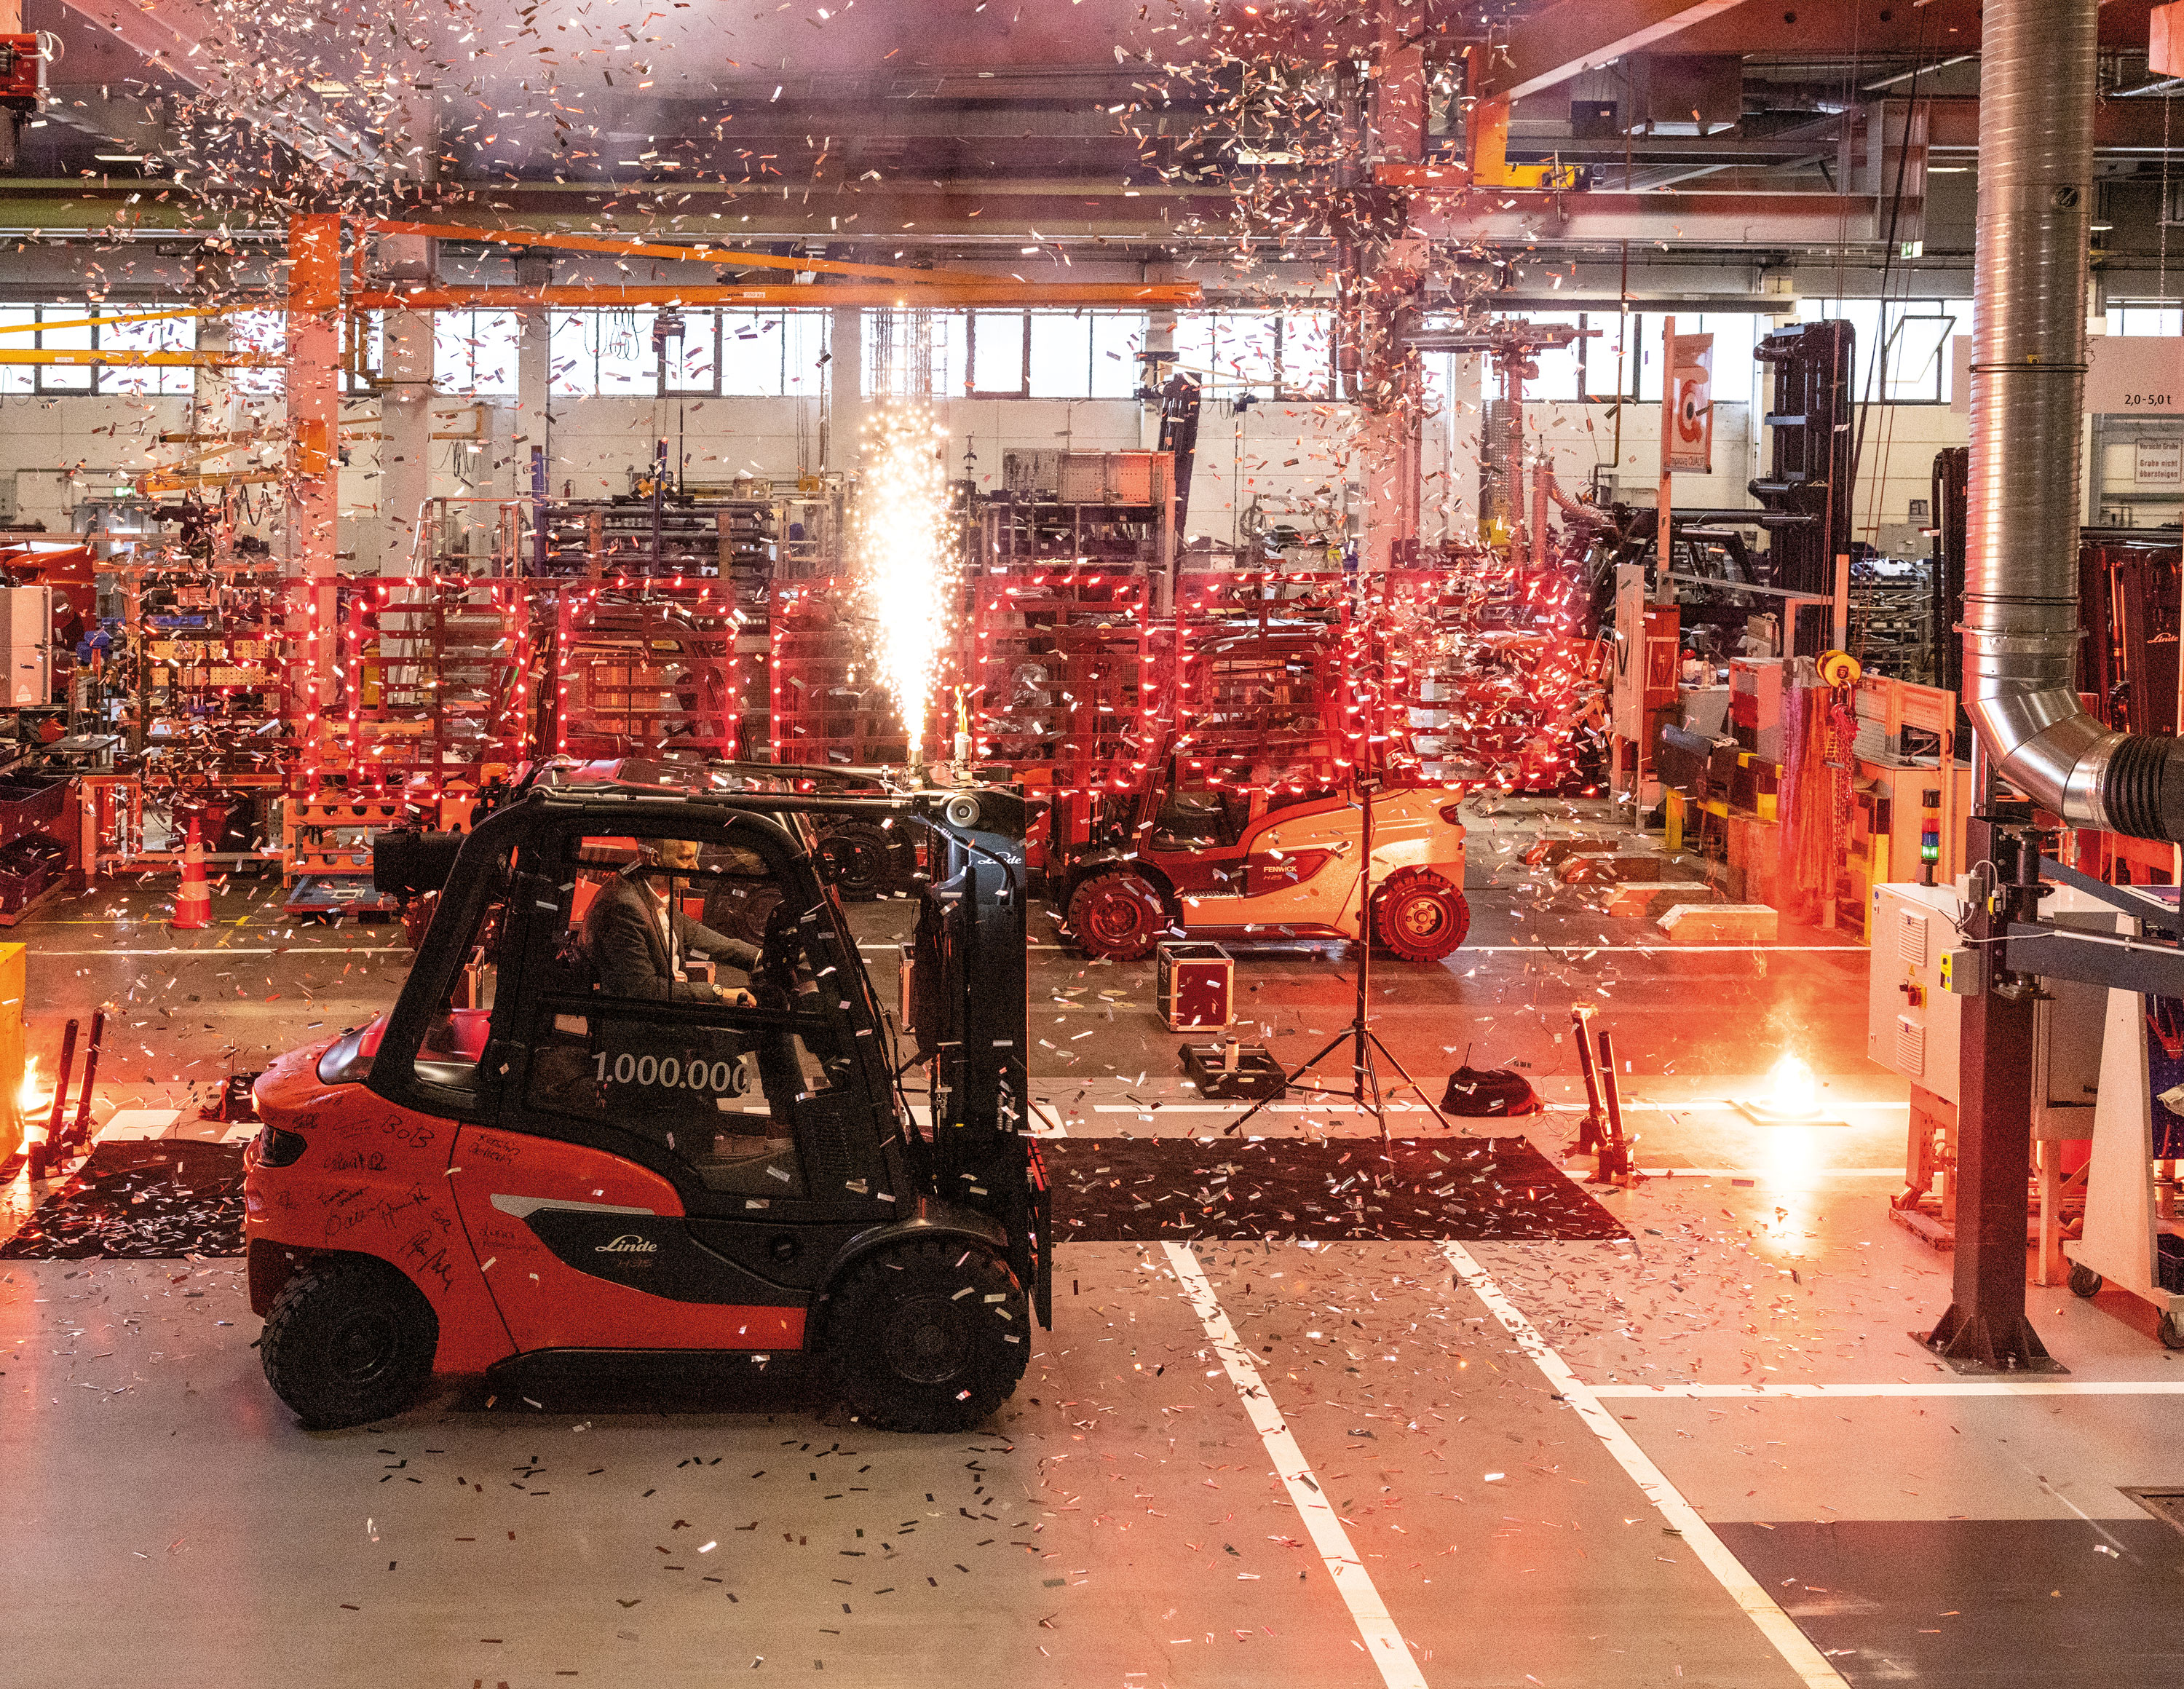 A dazzling indoor fireworks display marked the occasion as the one-millionth counterbalance truck produced at Linde Material Handling's Aschaffenburg plant left the assembly line. Photo: Linde Material Handling GmbH, Aschaffenburg